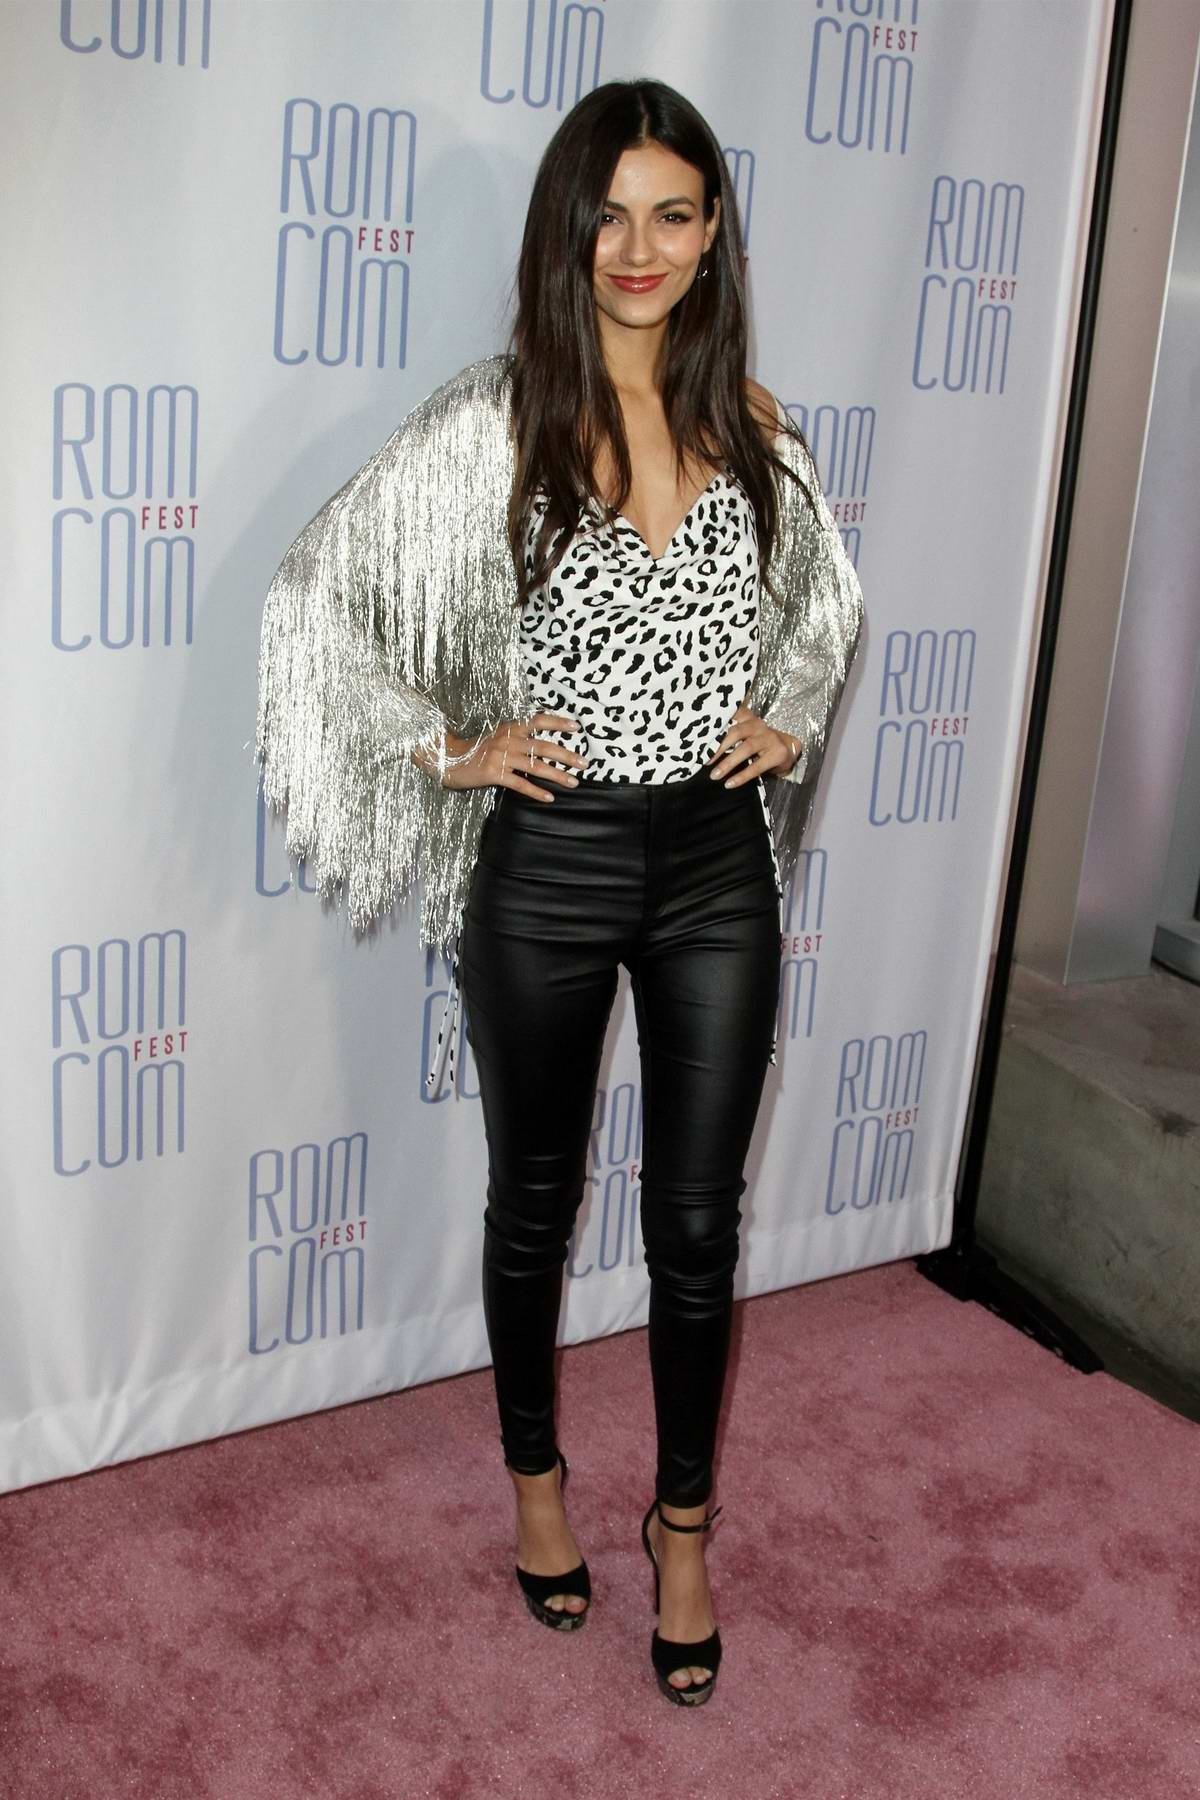 Victoria Justice attends the screening for 'Summer Night' at Rom Com Fest held at The Downtown Independent Theatre in Los Angeles